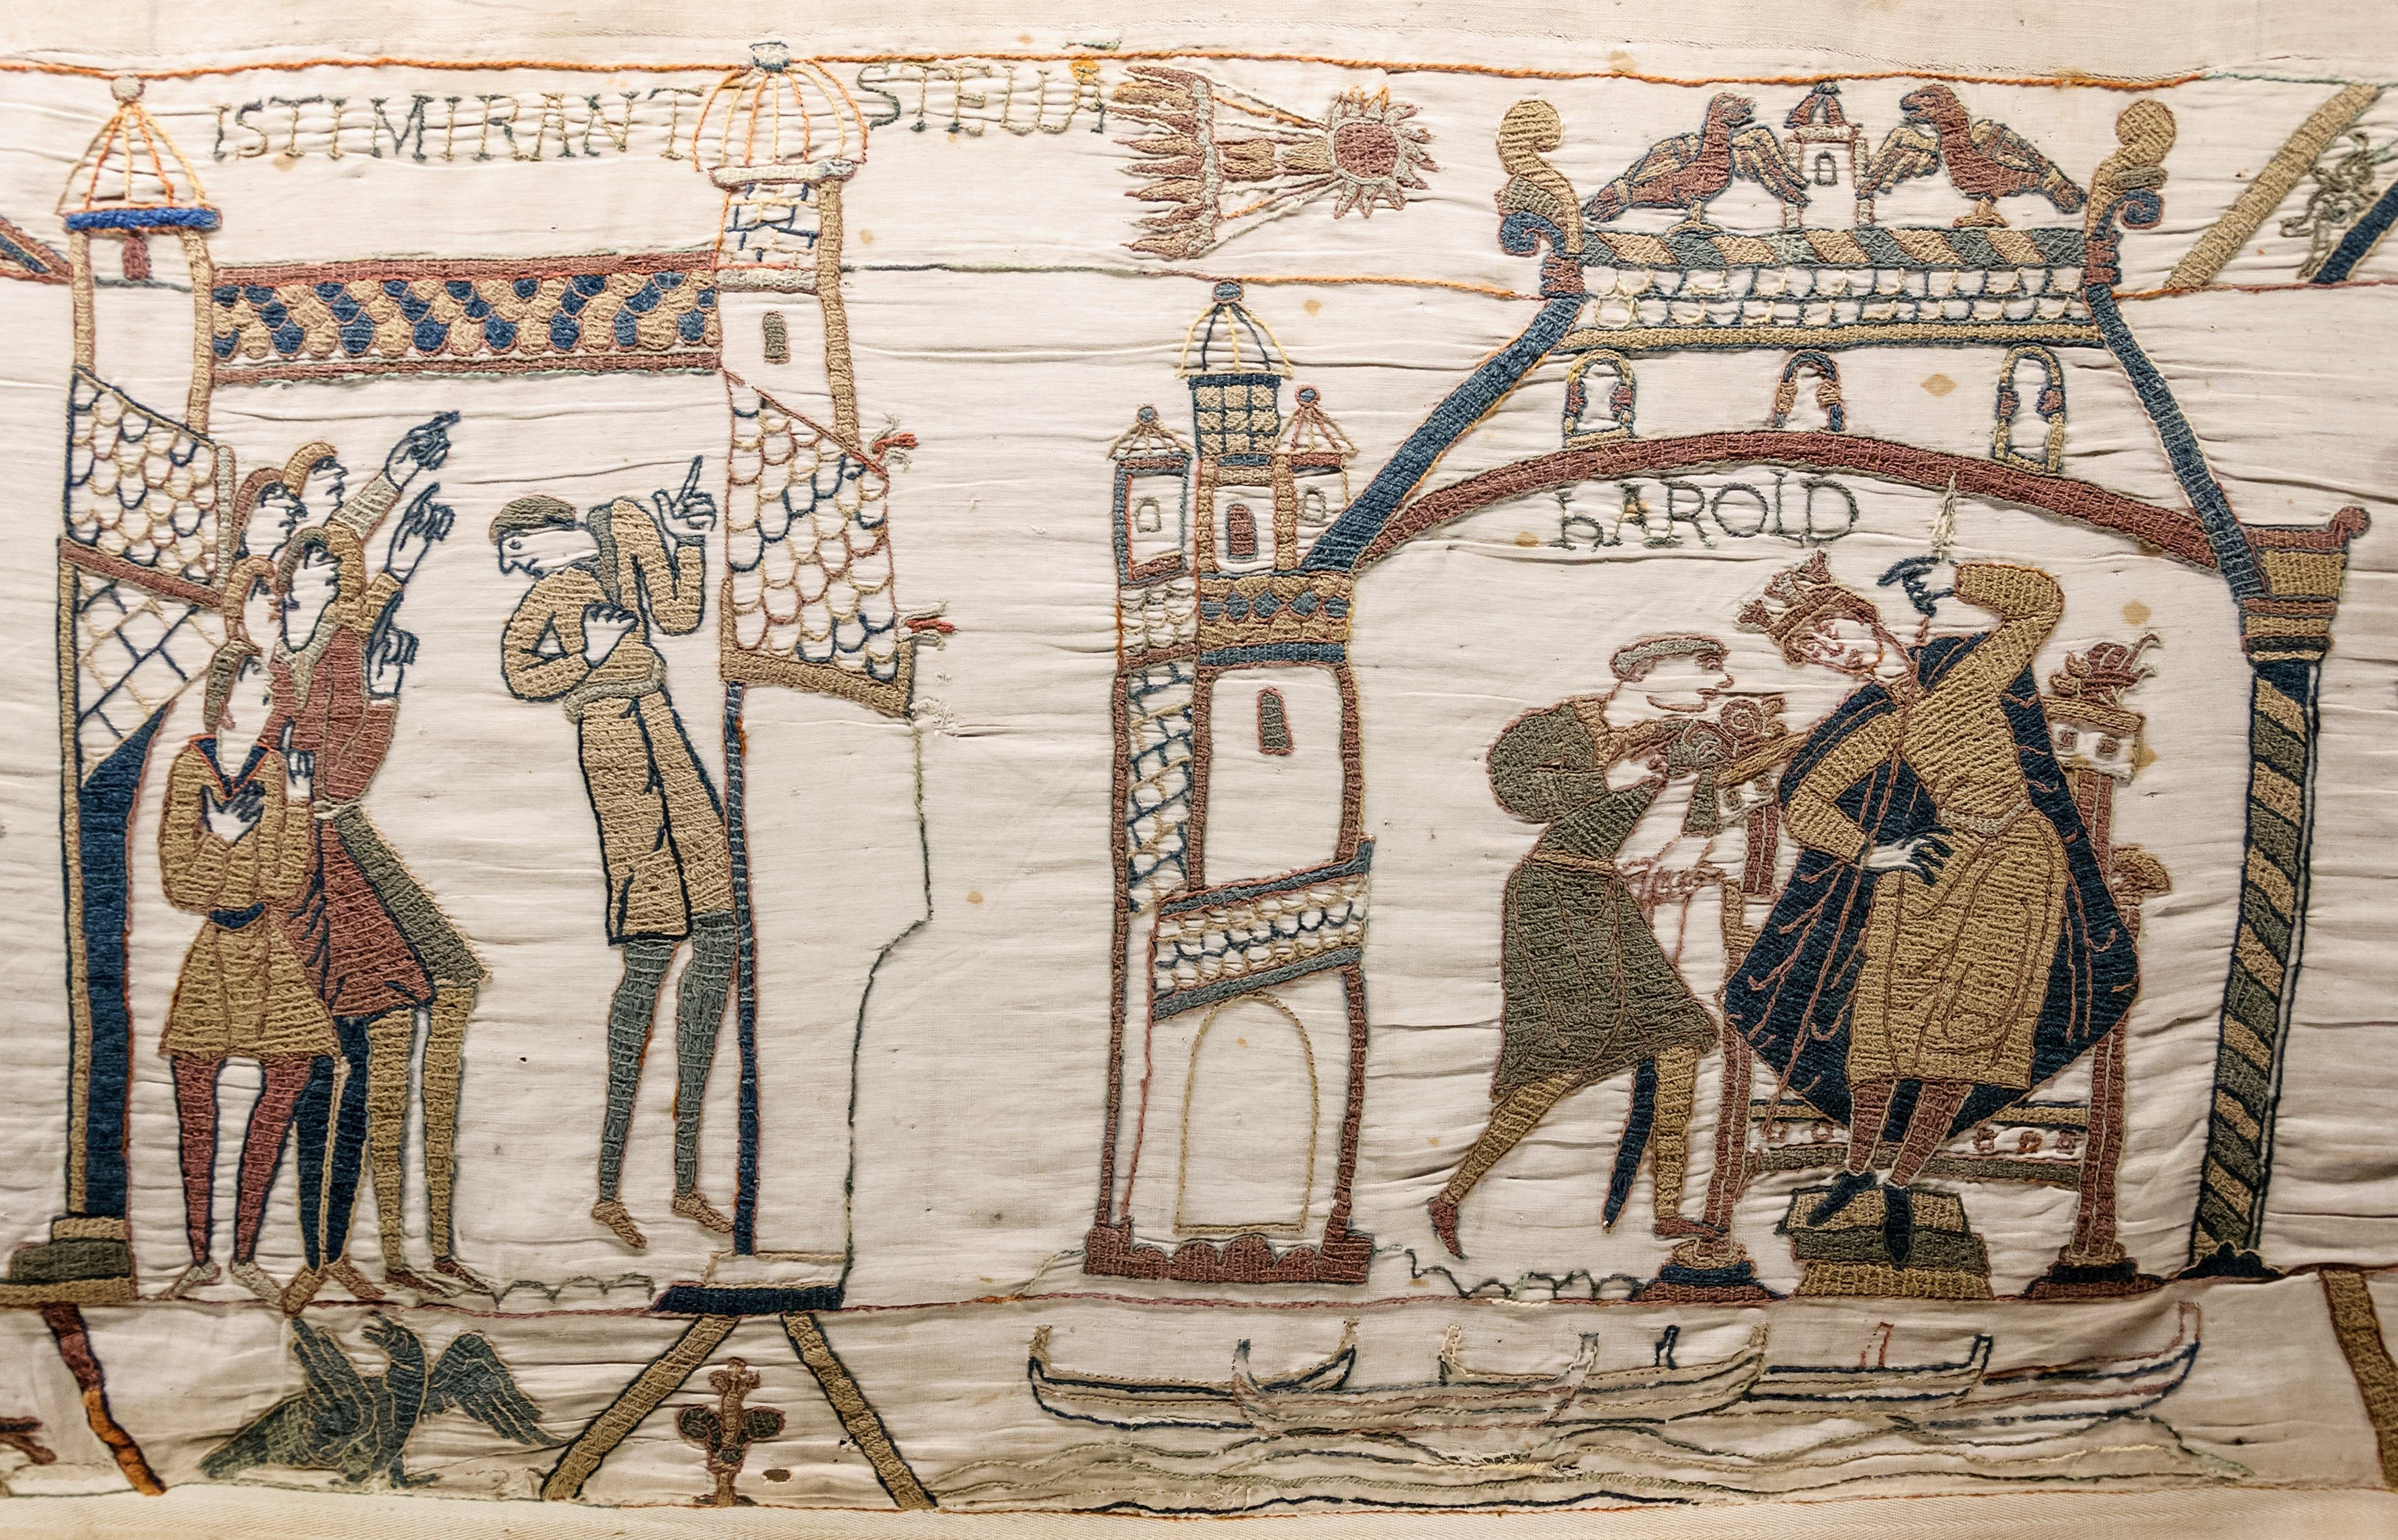 A panel of the Bayeux tapestry showing Halley's comet.